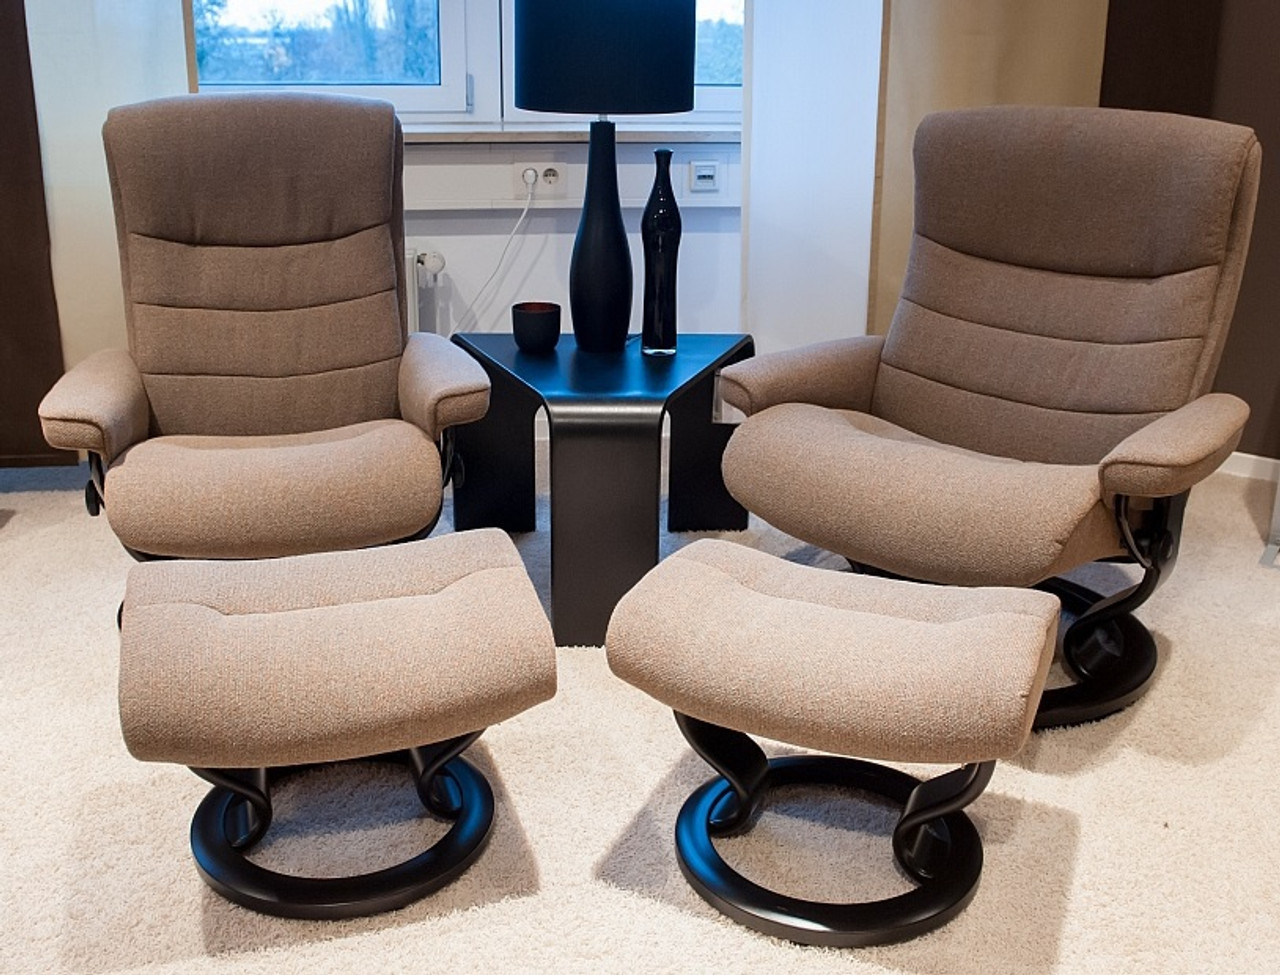 Magnificent Stressless Nordic Recliner And Ottoman Medium Pain Free Nationwide Delivery Machost Co Dining Chair Design Ideas Machostcouk